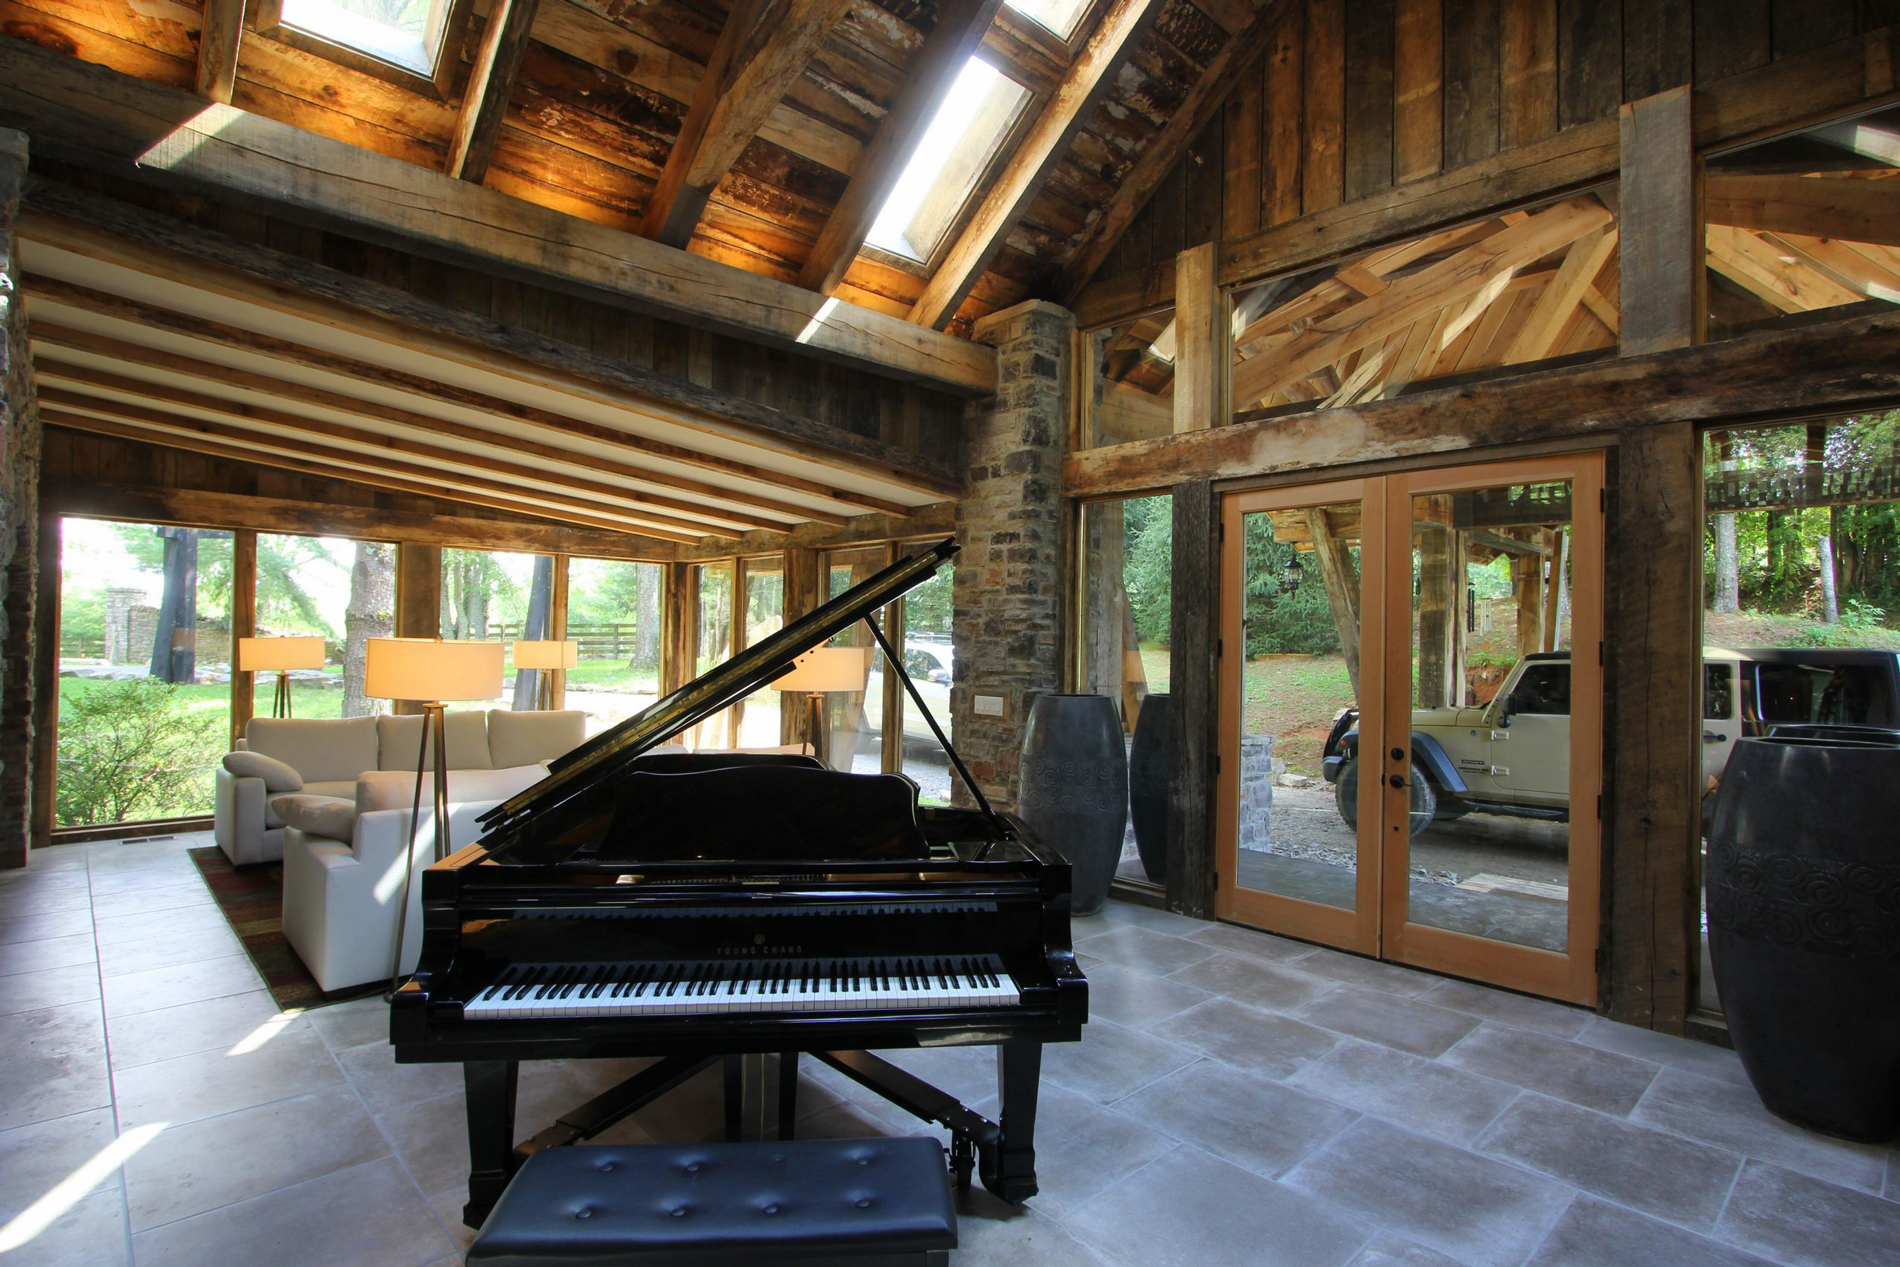 The Cottage Piano